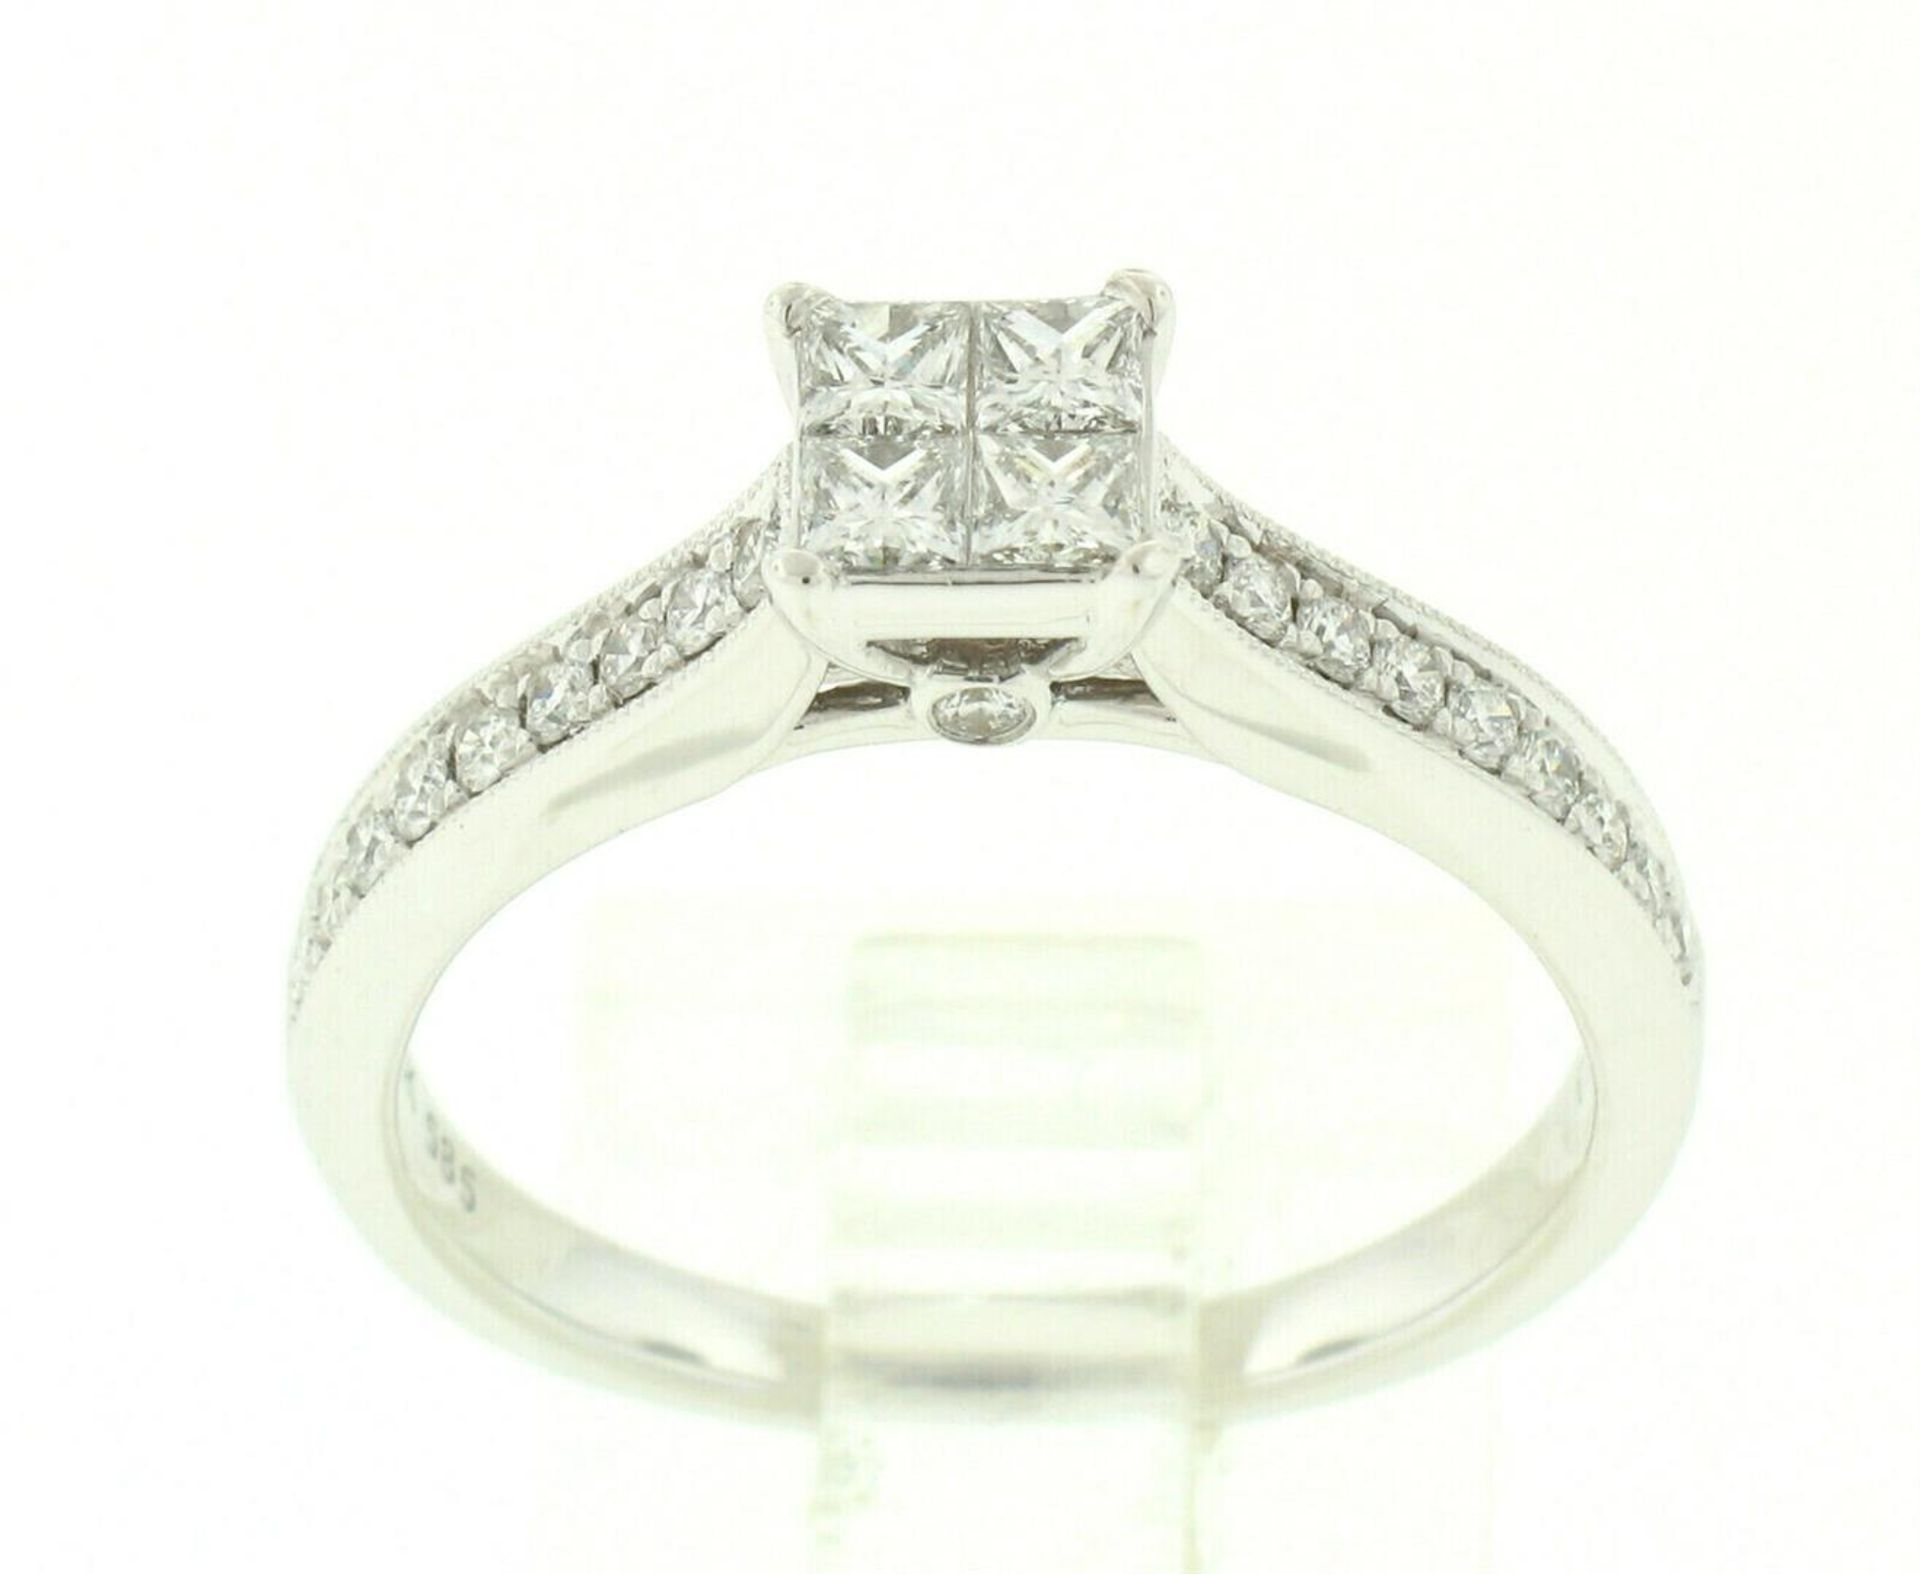 14k White Gold 0.79ctw Illusion Solitaire Princess Cut Diamond Engagement Ring - Image 7 of 8